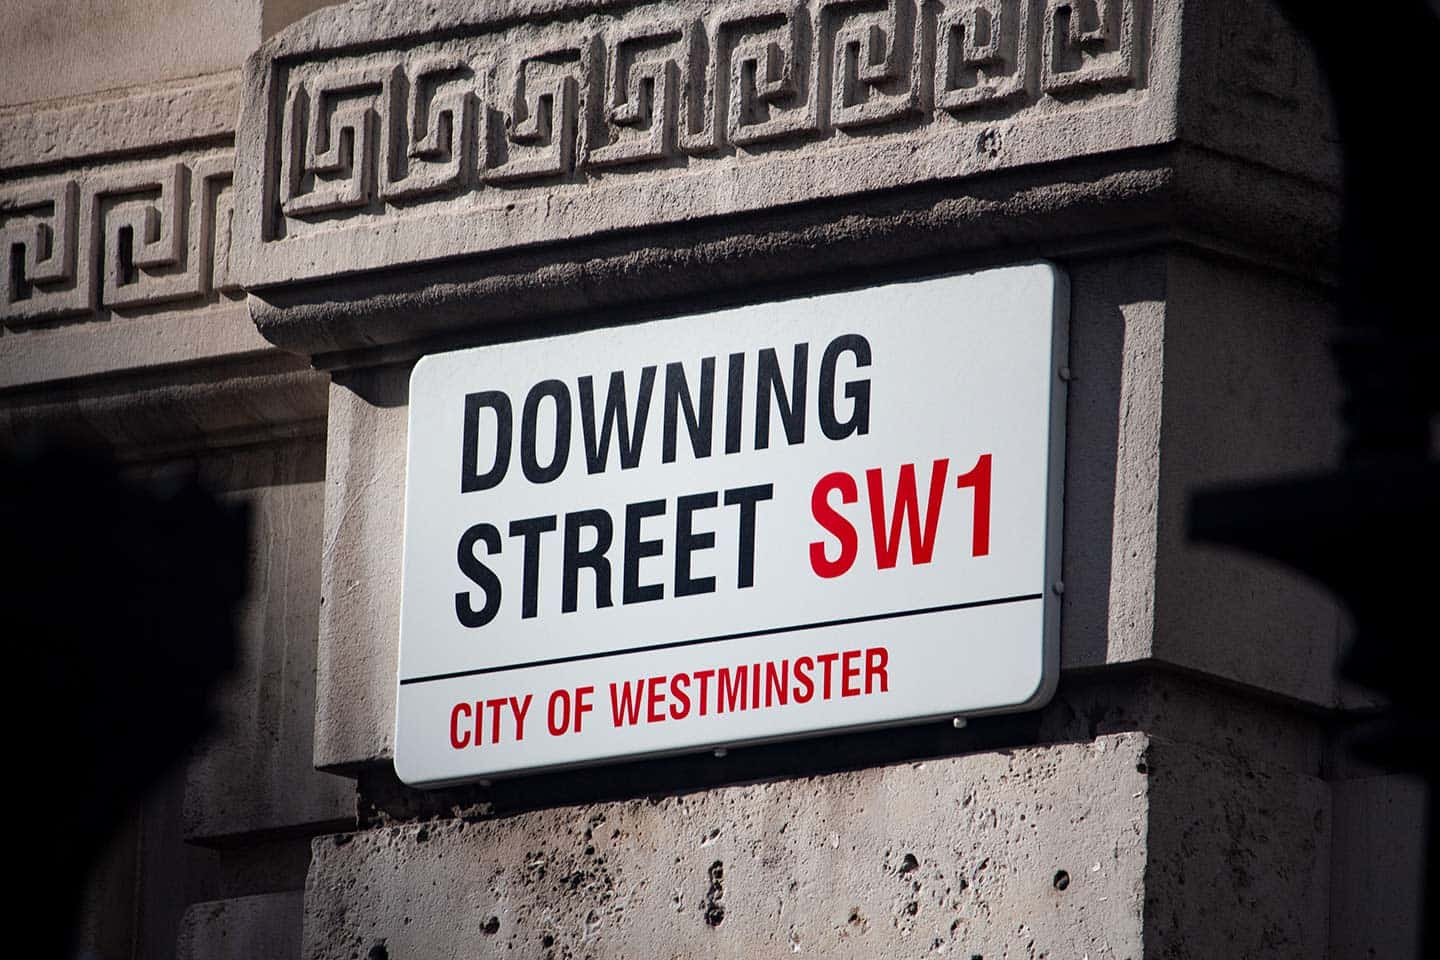 Image of the famous Downing Street sign in London